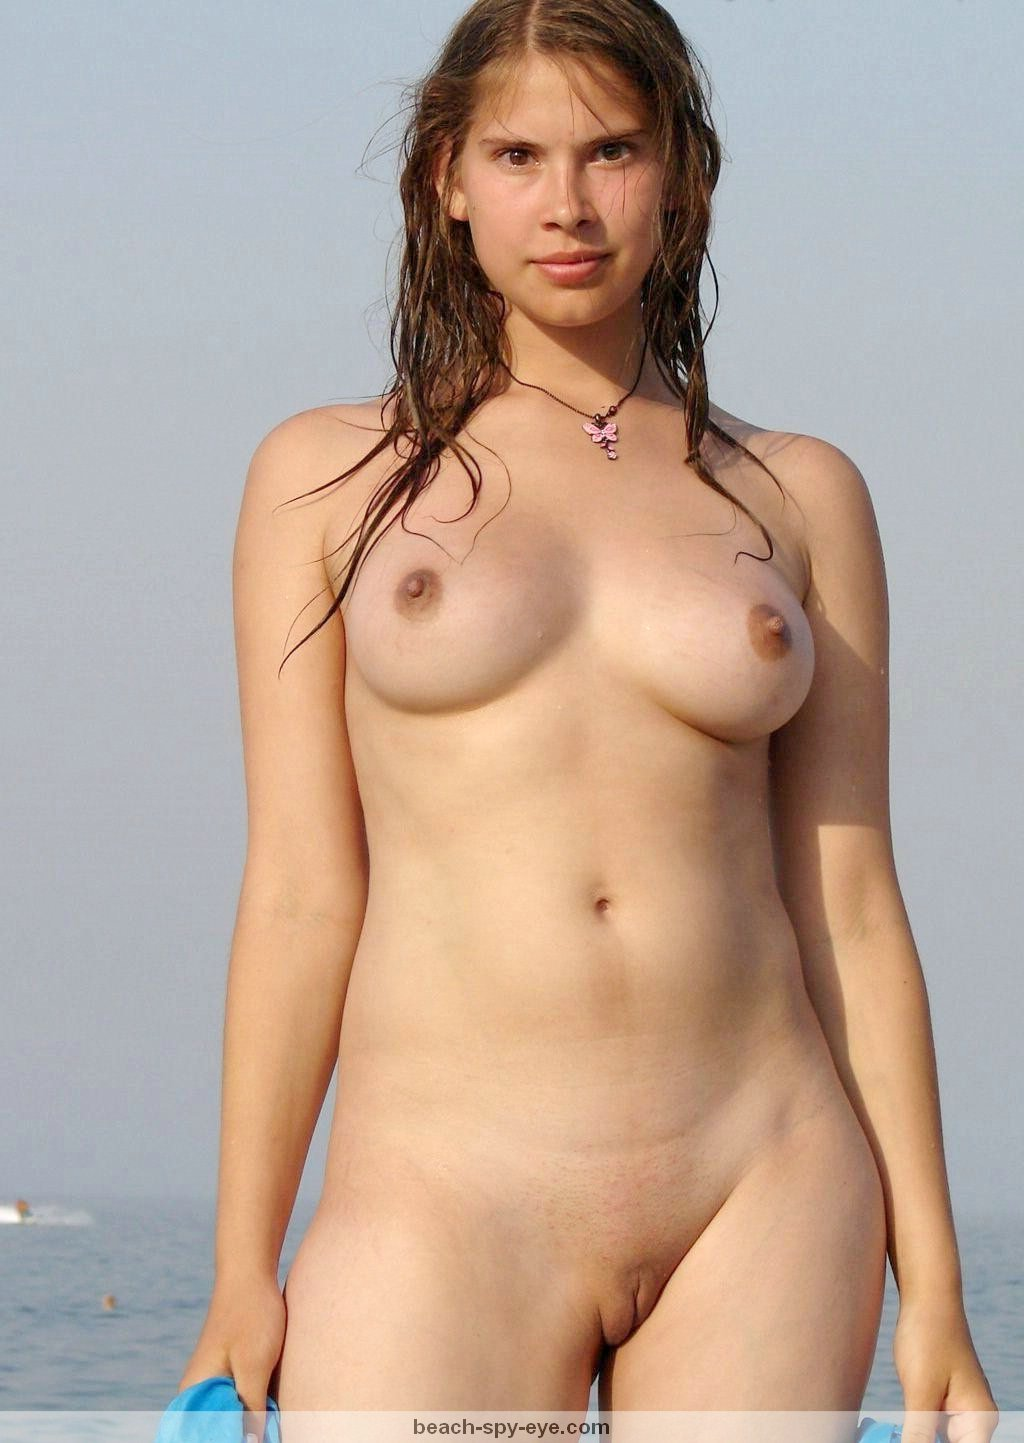 Nude Beach Voyeur Photos - Young Teenage Nudist Naked At Beach-6483